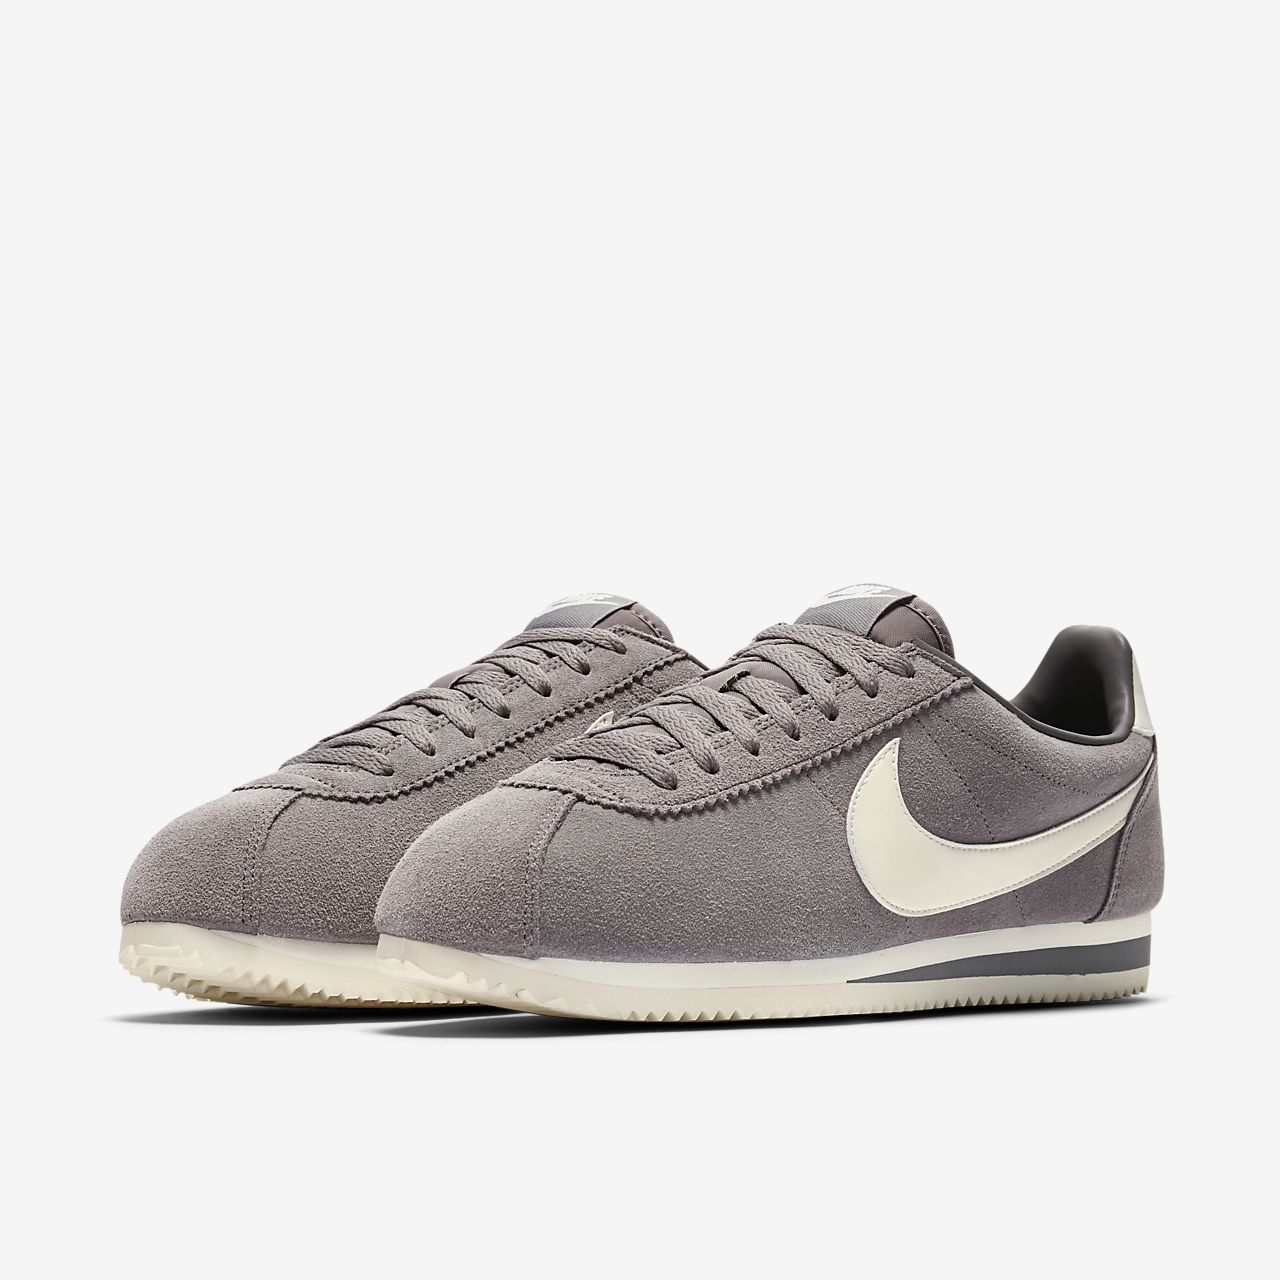 new product 6e8c6 6d517 Chaussure Nike Classic Classic Nike Cortez SE pour BE 10739f